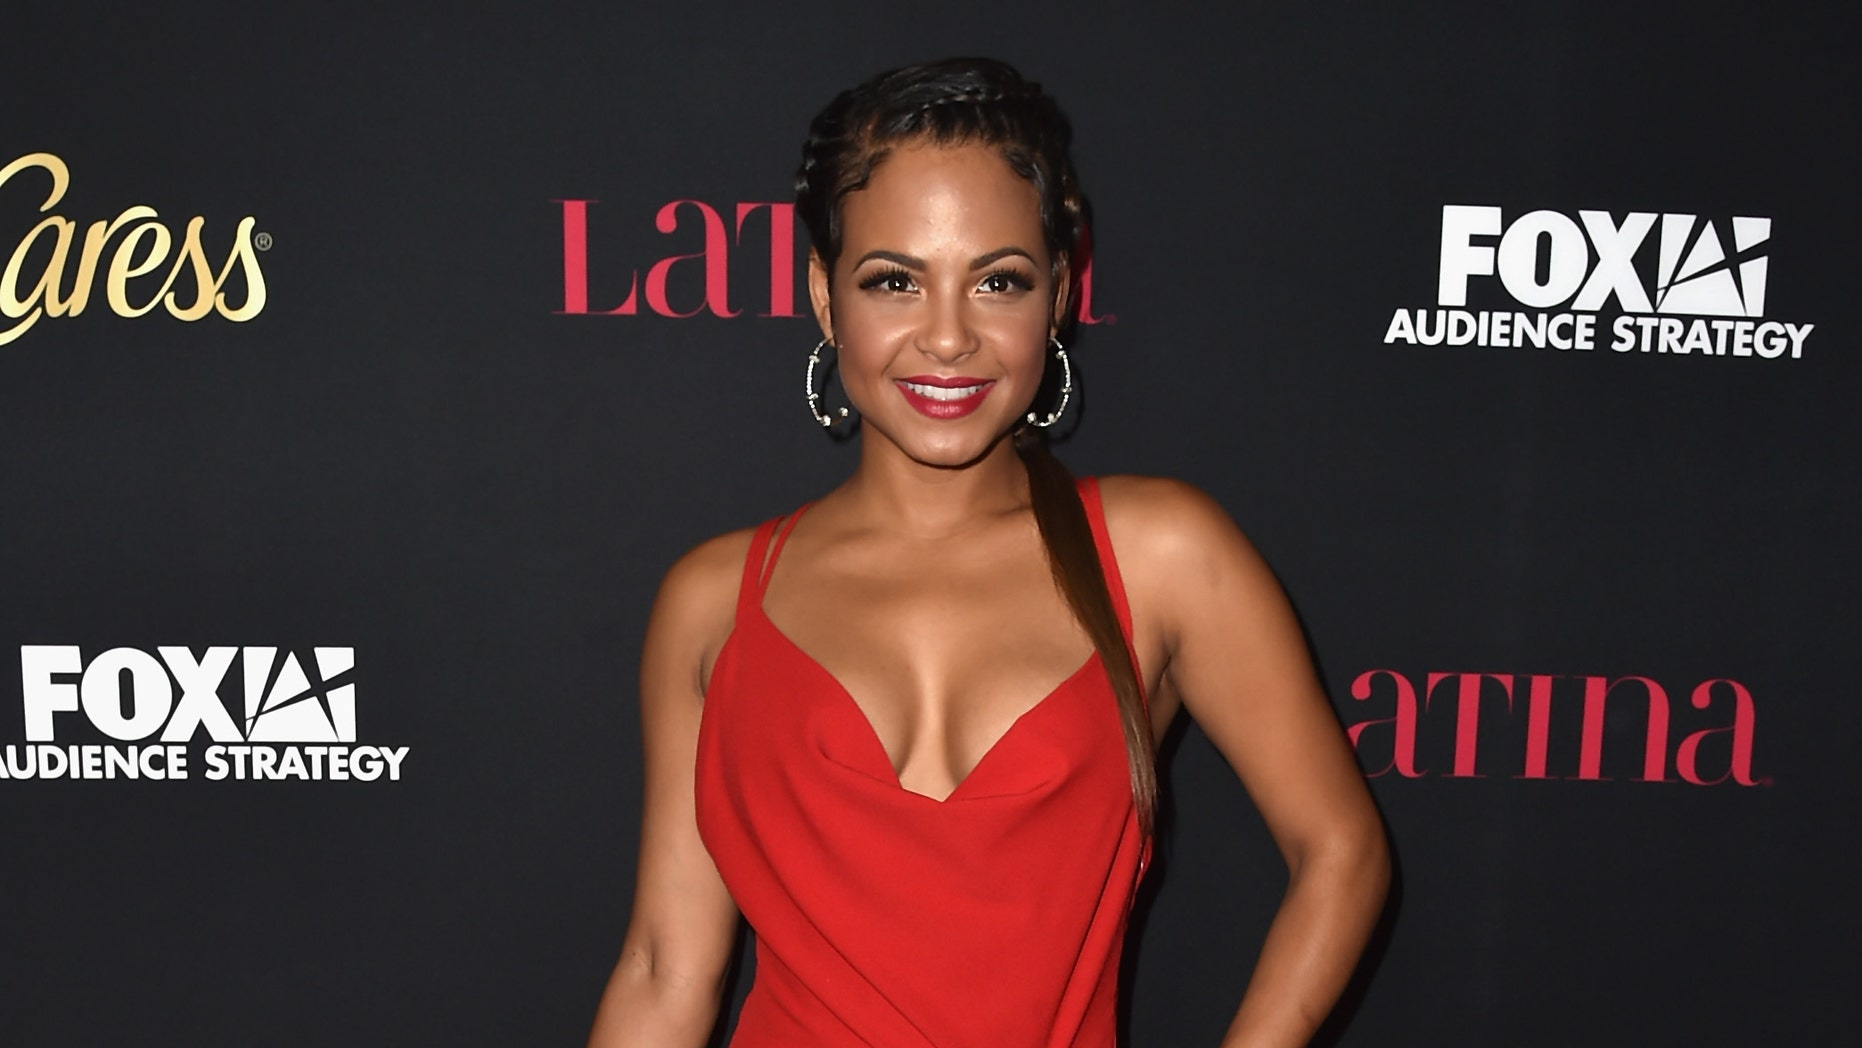 """WEST HOLLYWOOD, CA - OCTOBER 02:  Actress Christina Milian attends LATINA Magazine's """"Hollywood Hot List"""" party  at the Sunset Tower Hotel on October 2, 2014 in West Hollywood, California.  (Photo by Alberto E. Rodriguez/Getty Images)"""